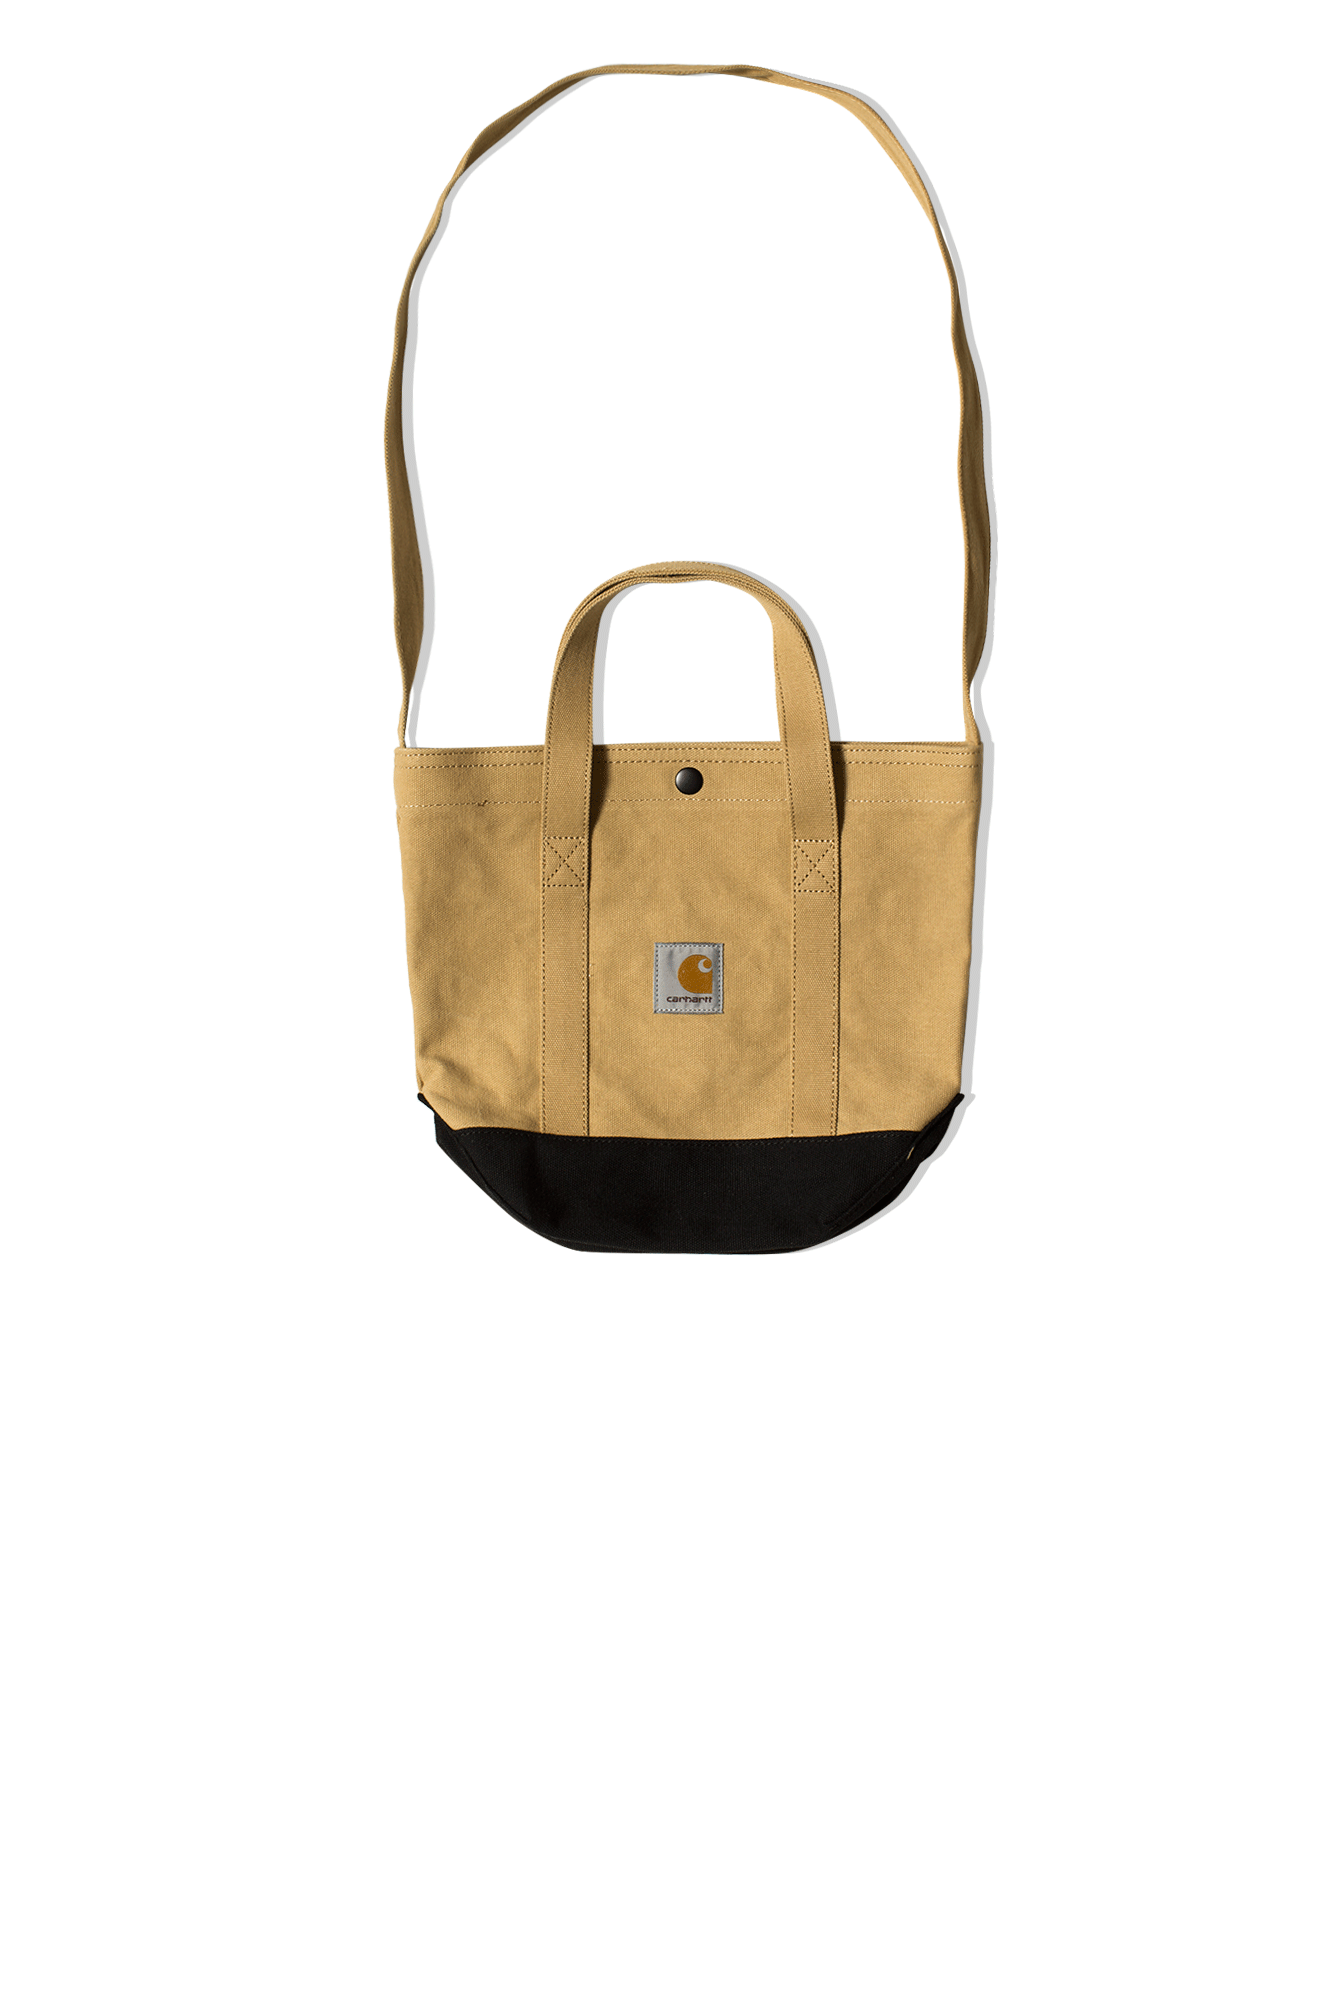 Carhartt Borse tote Canvas Small Tote Bag Marrone I028886.06#000#07E.90#OS - One Block Down